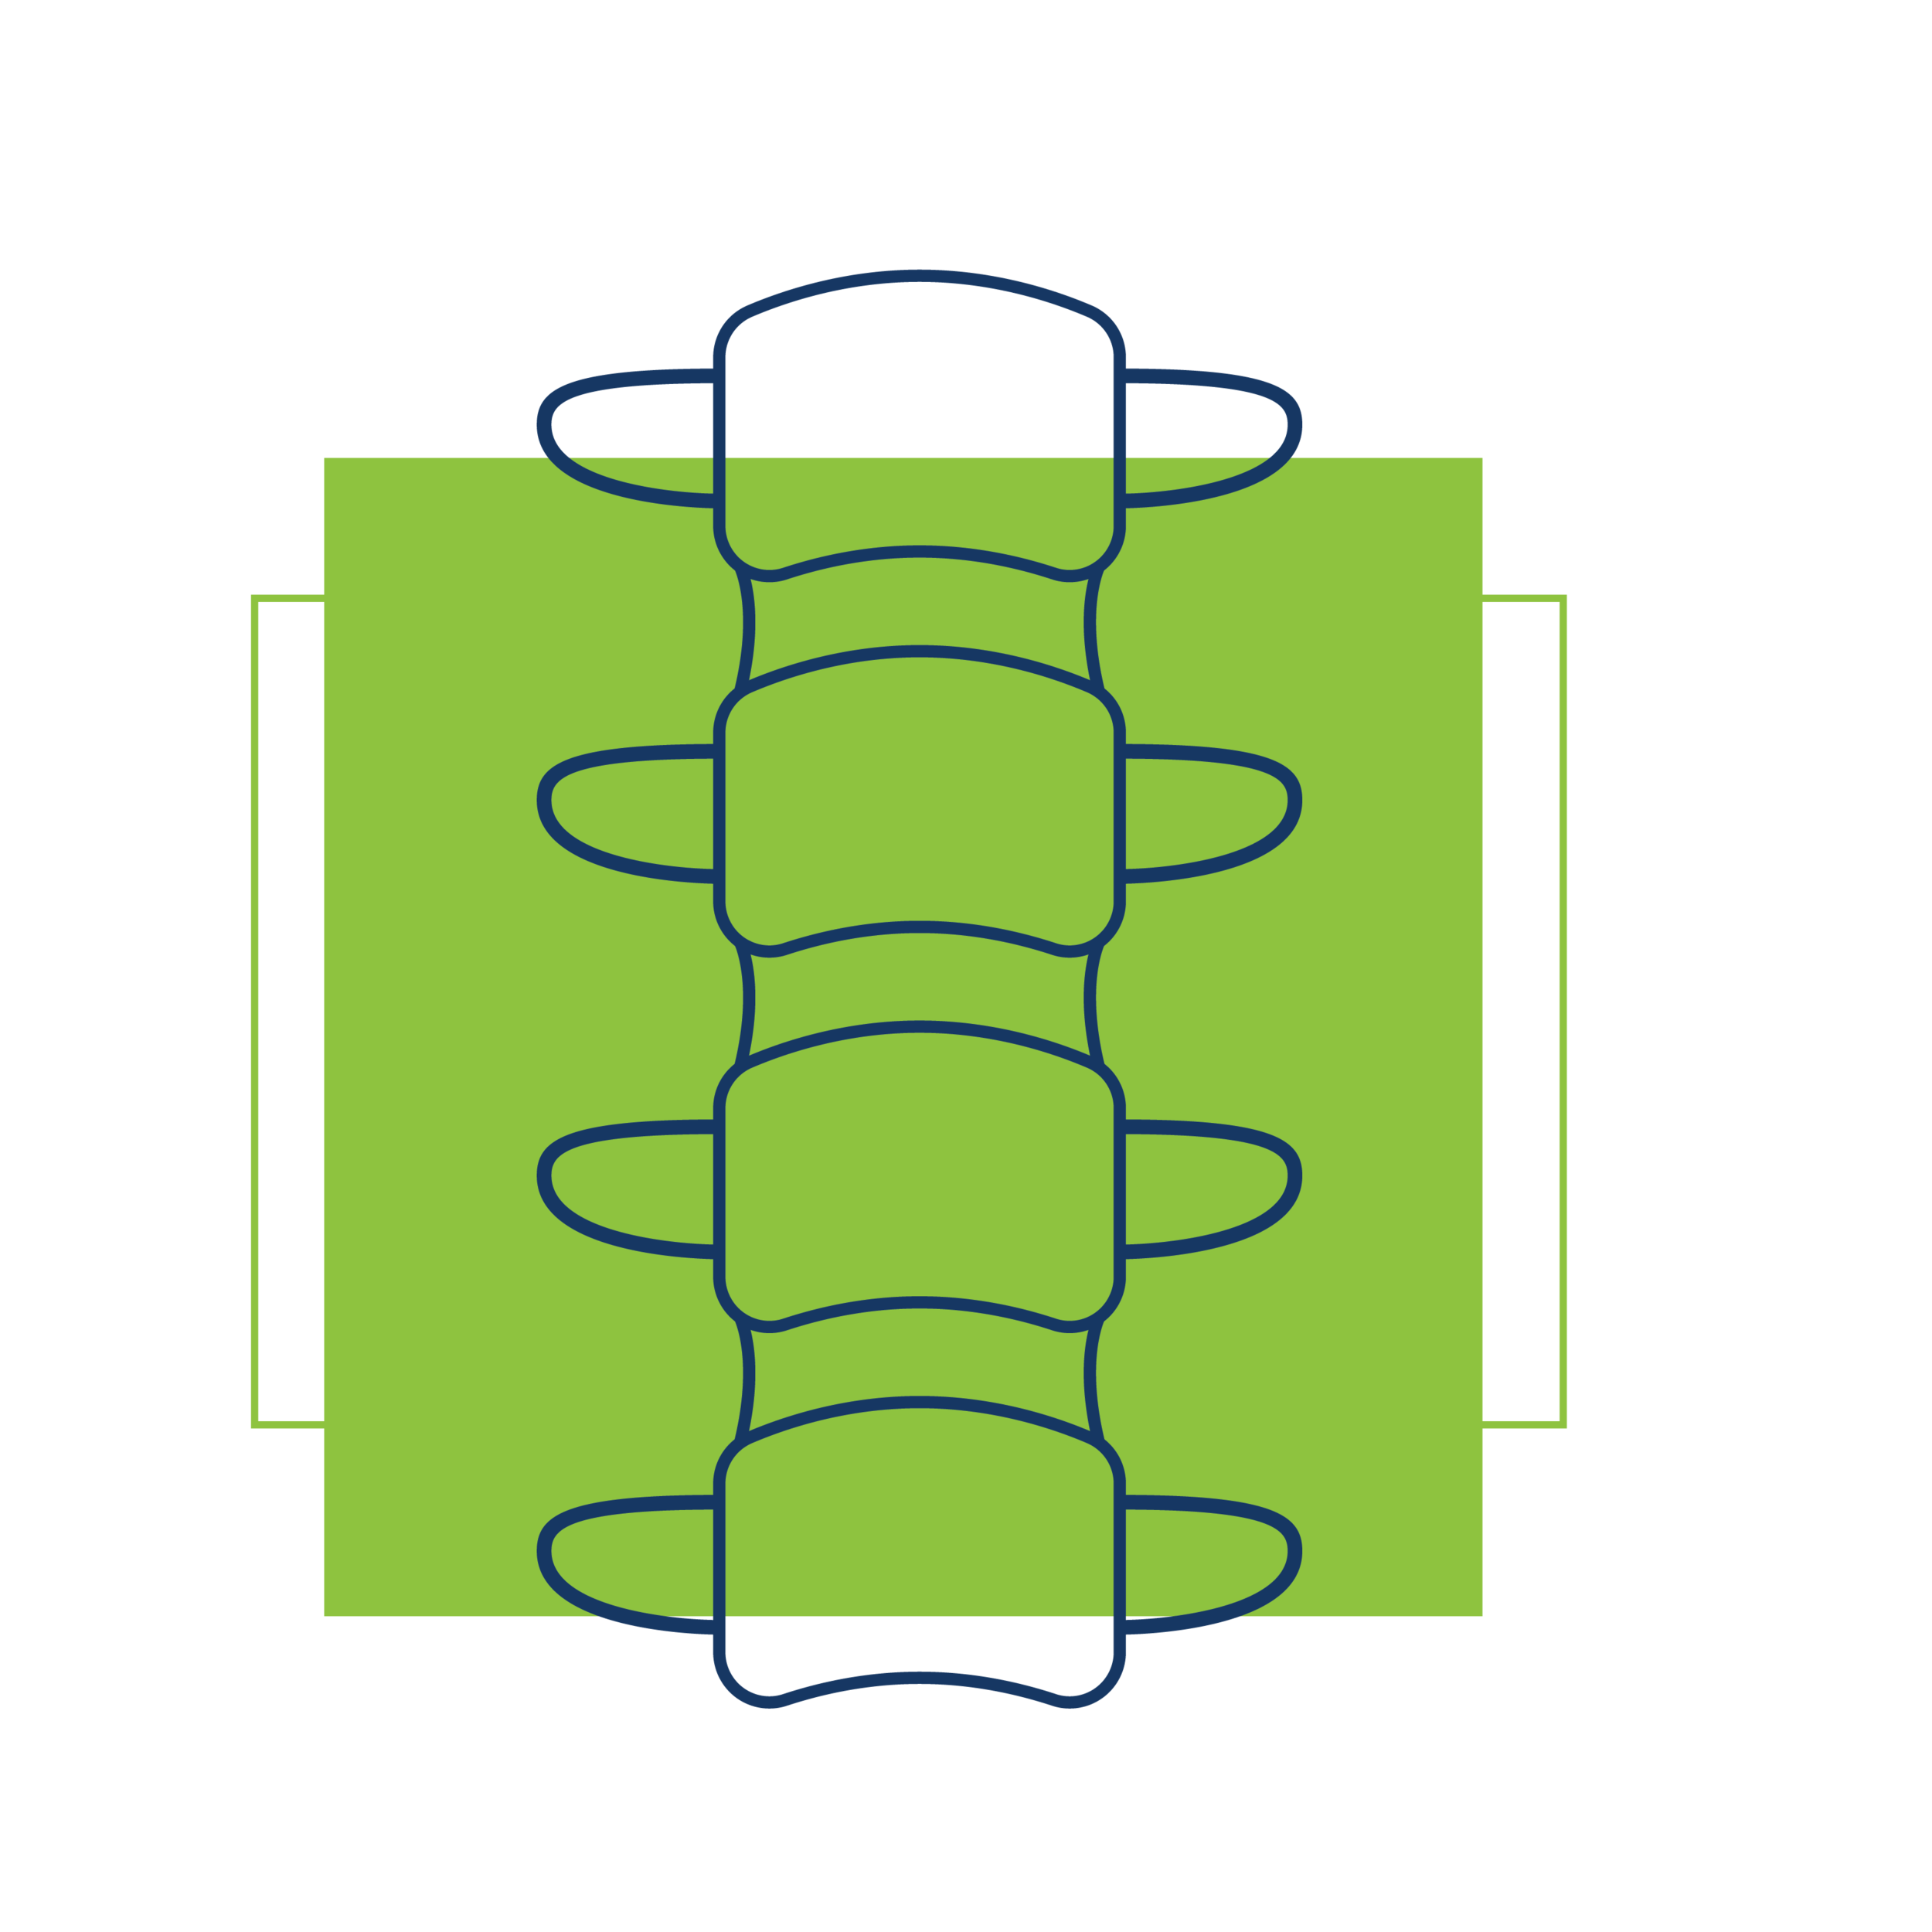 Blue spine Icon with green square and green square outline behind it.